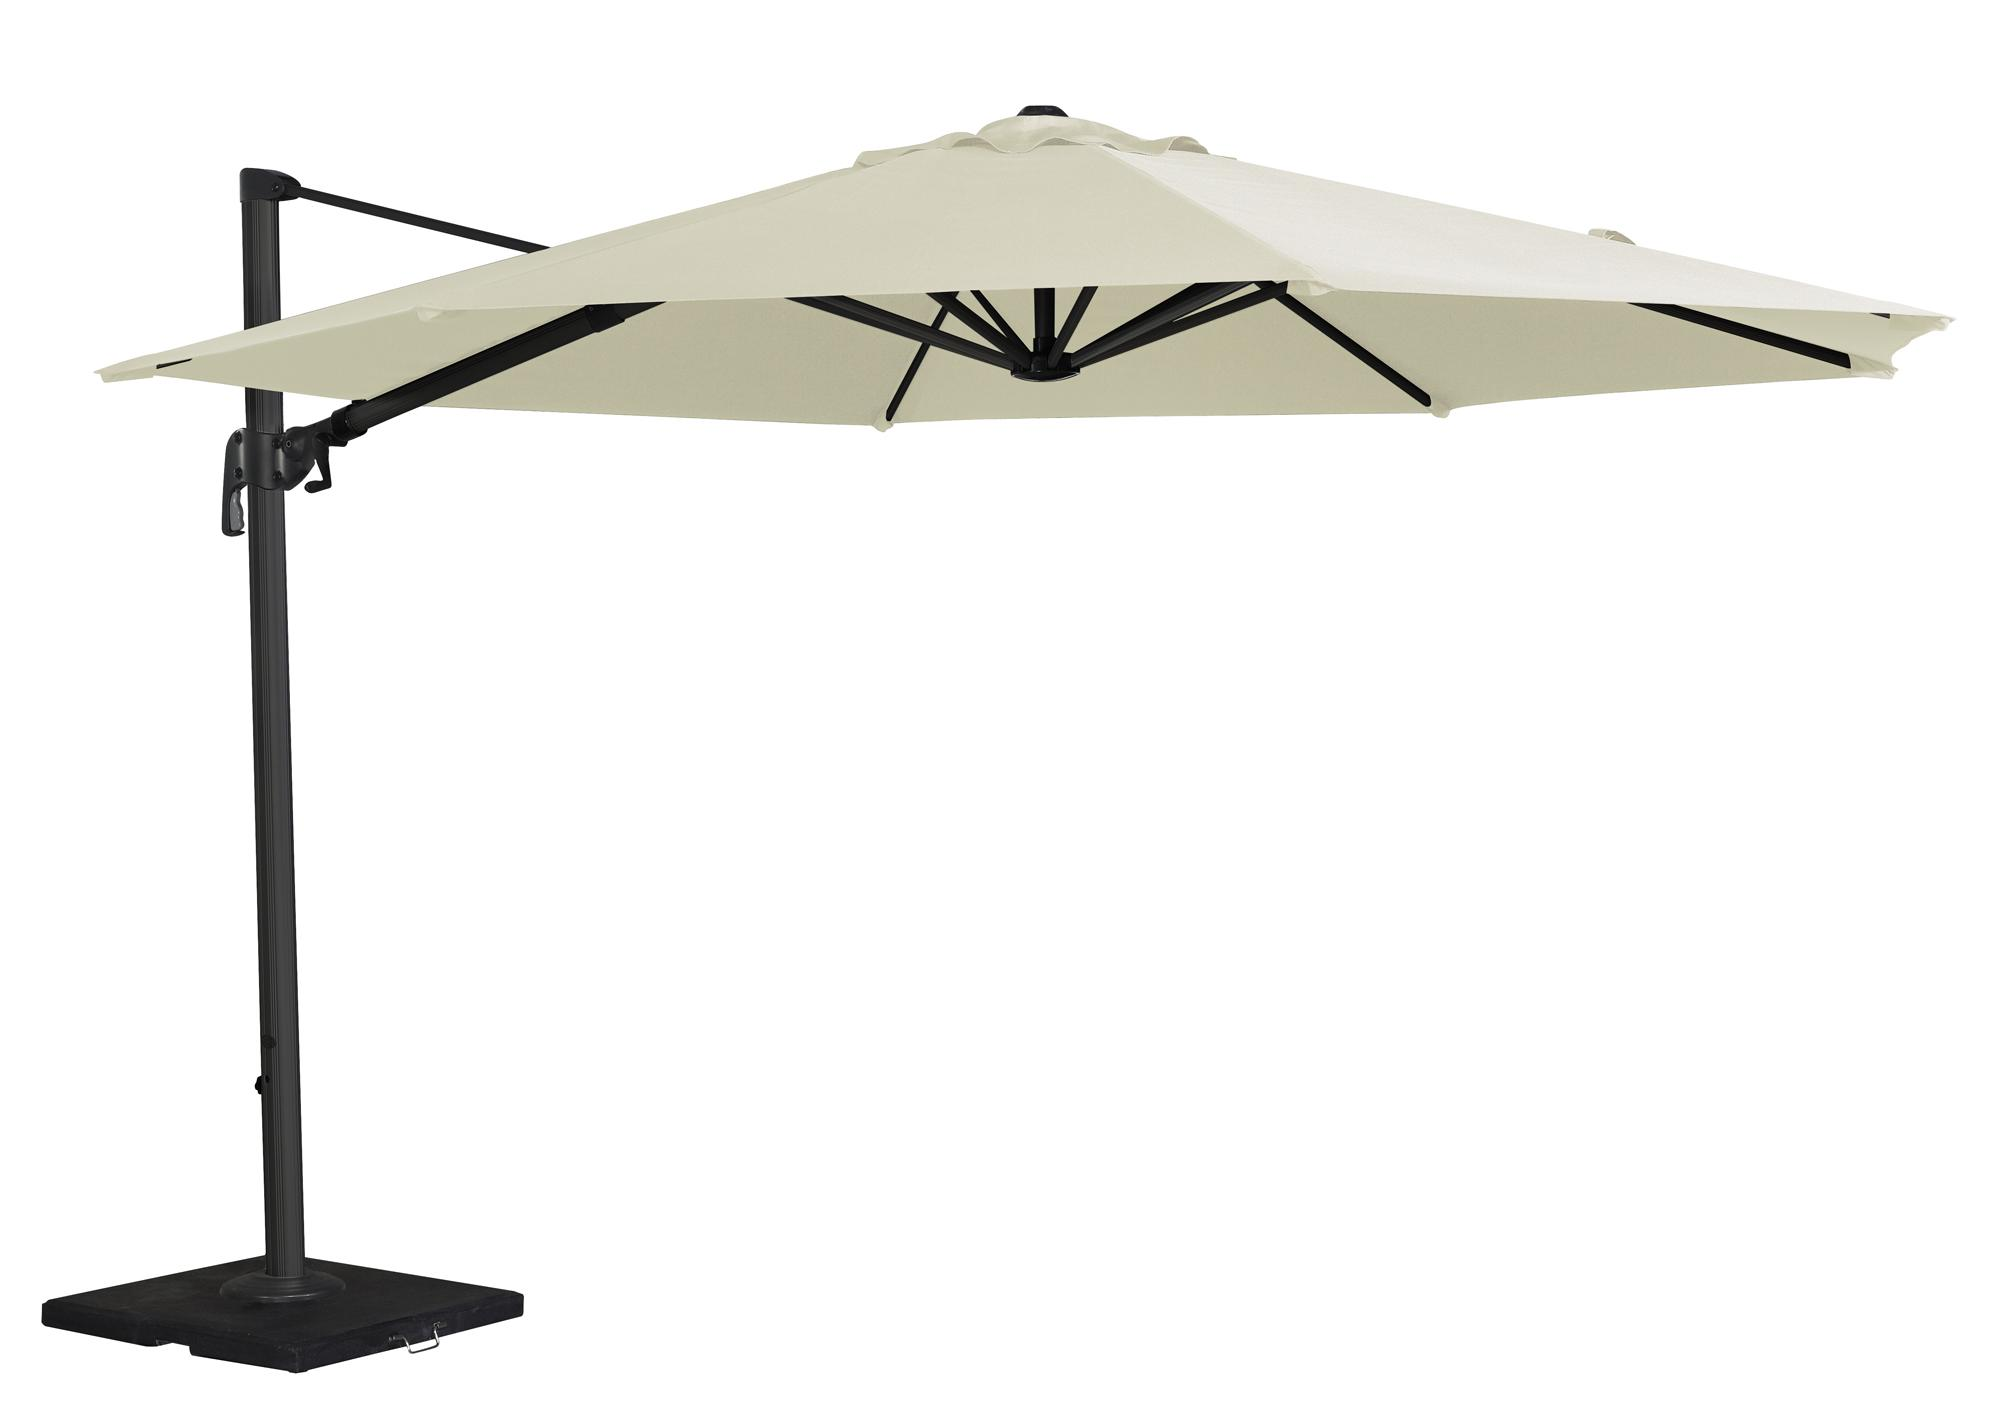 cantilever parasol garden cream natural ecru colourway 3.5m aluminium frame